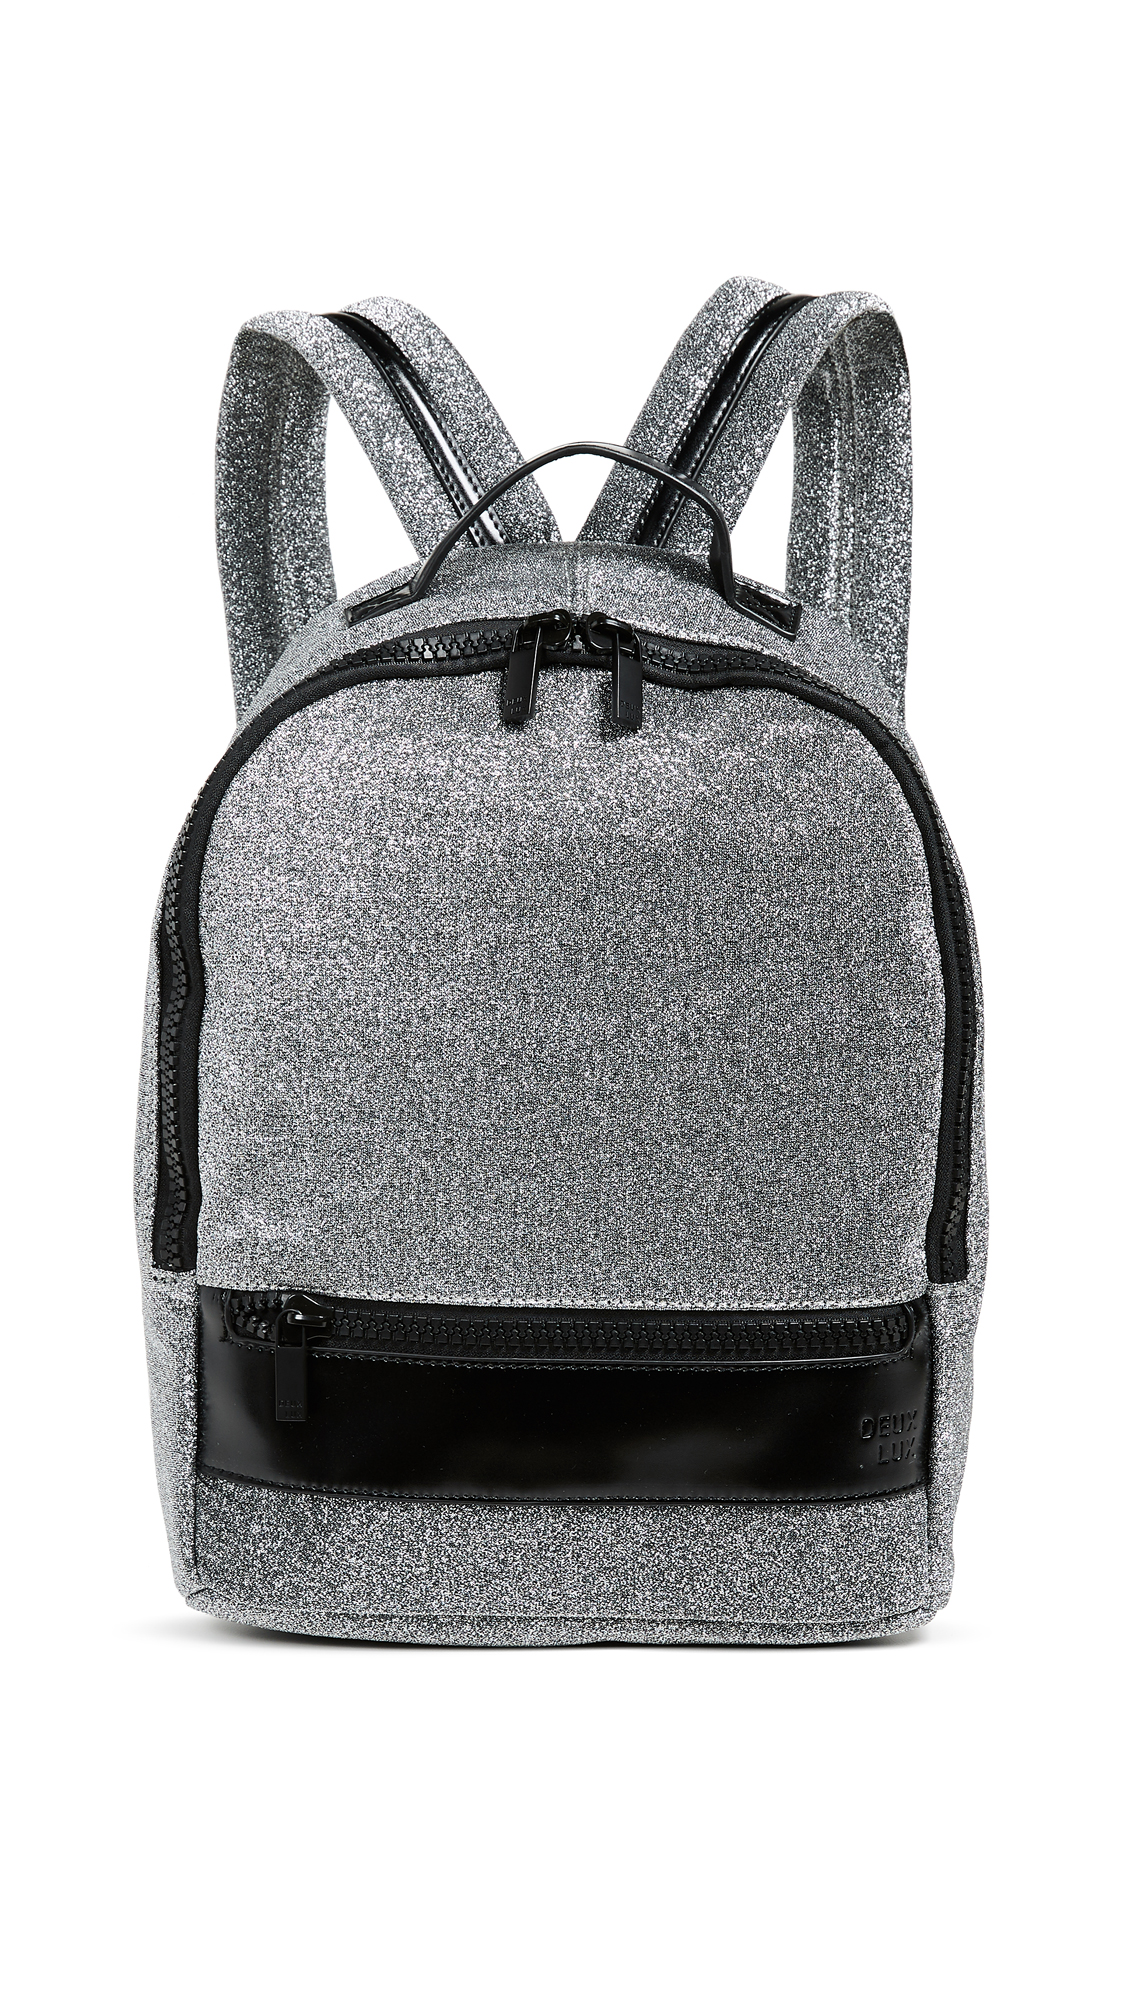 DEUX LUX Flow Backpack in Silver Sparkle